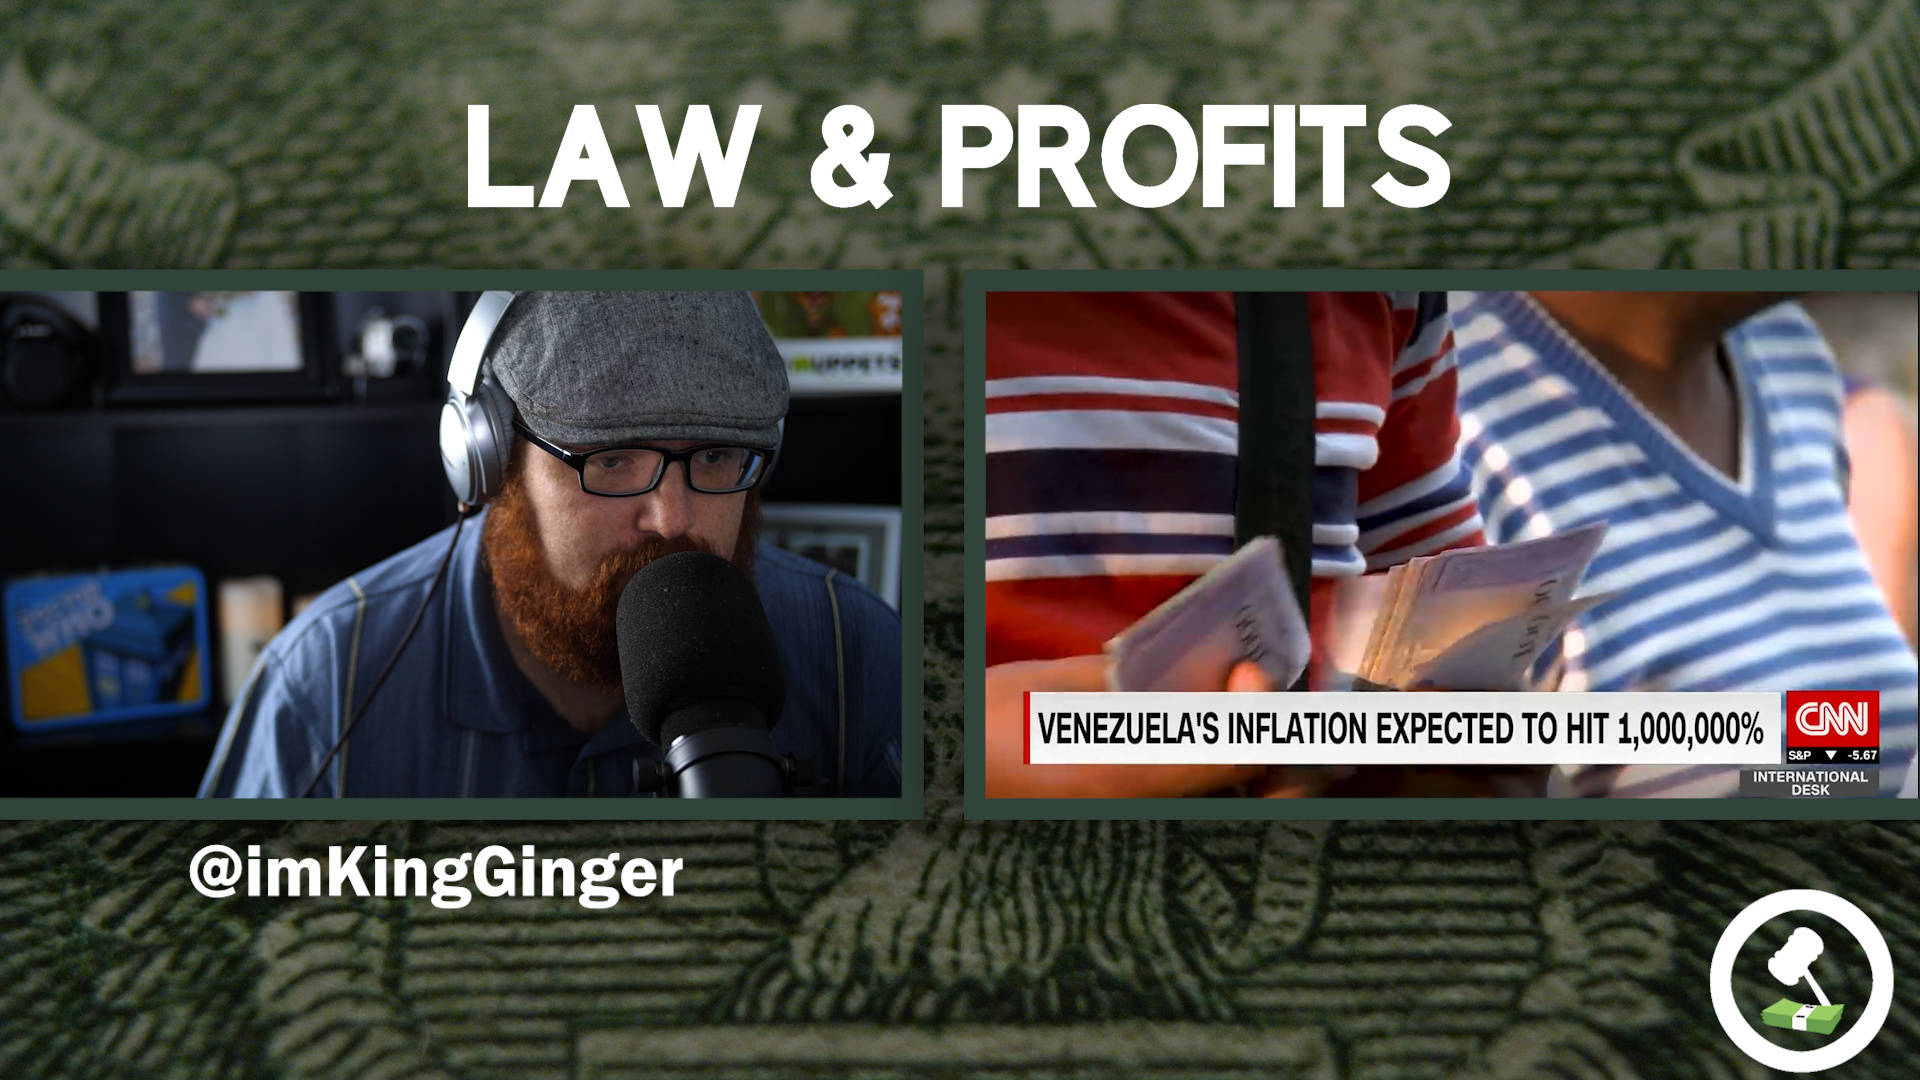 Law and Profits: Which God is better? Jesus or Venezuela?